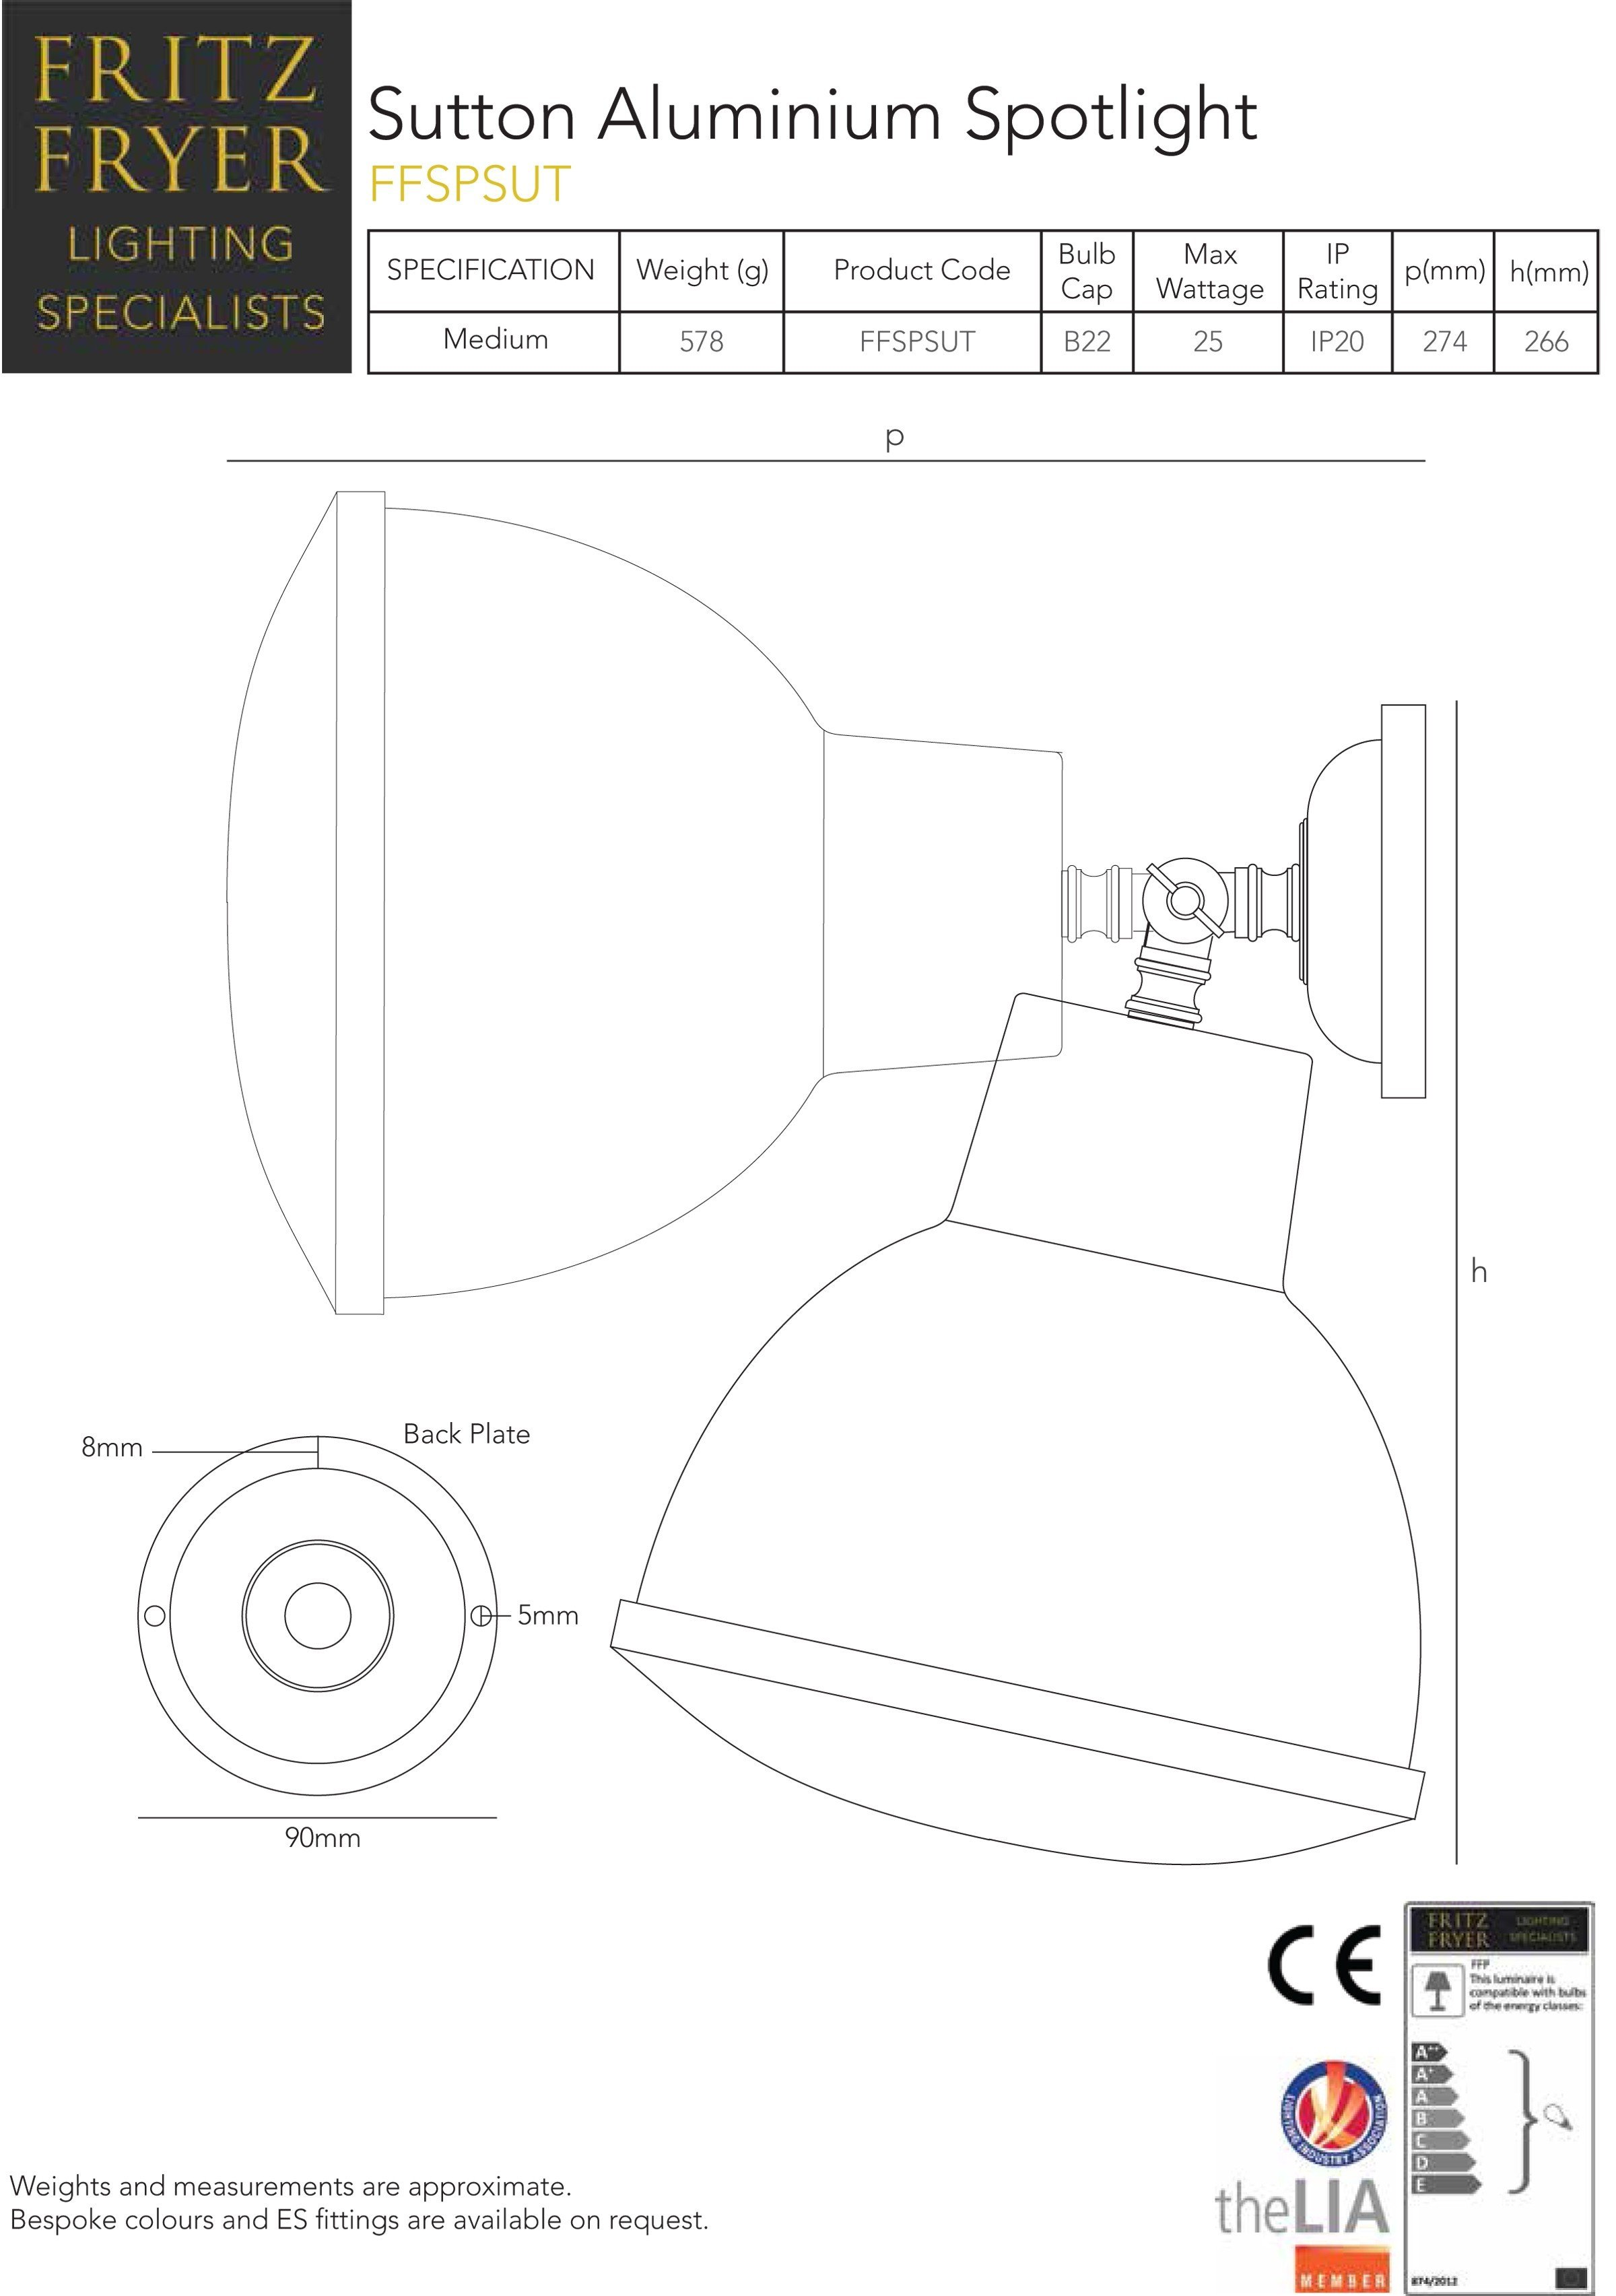 designer-lighting-sutton-industrial-spotlight-technical-data-sheet-fritz-fryer